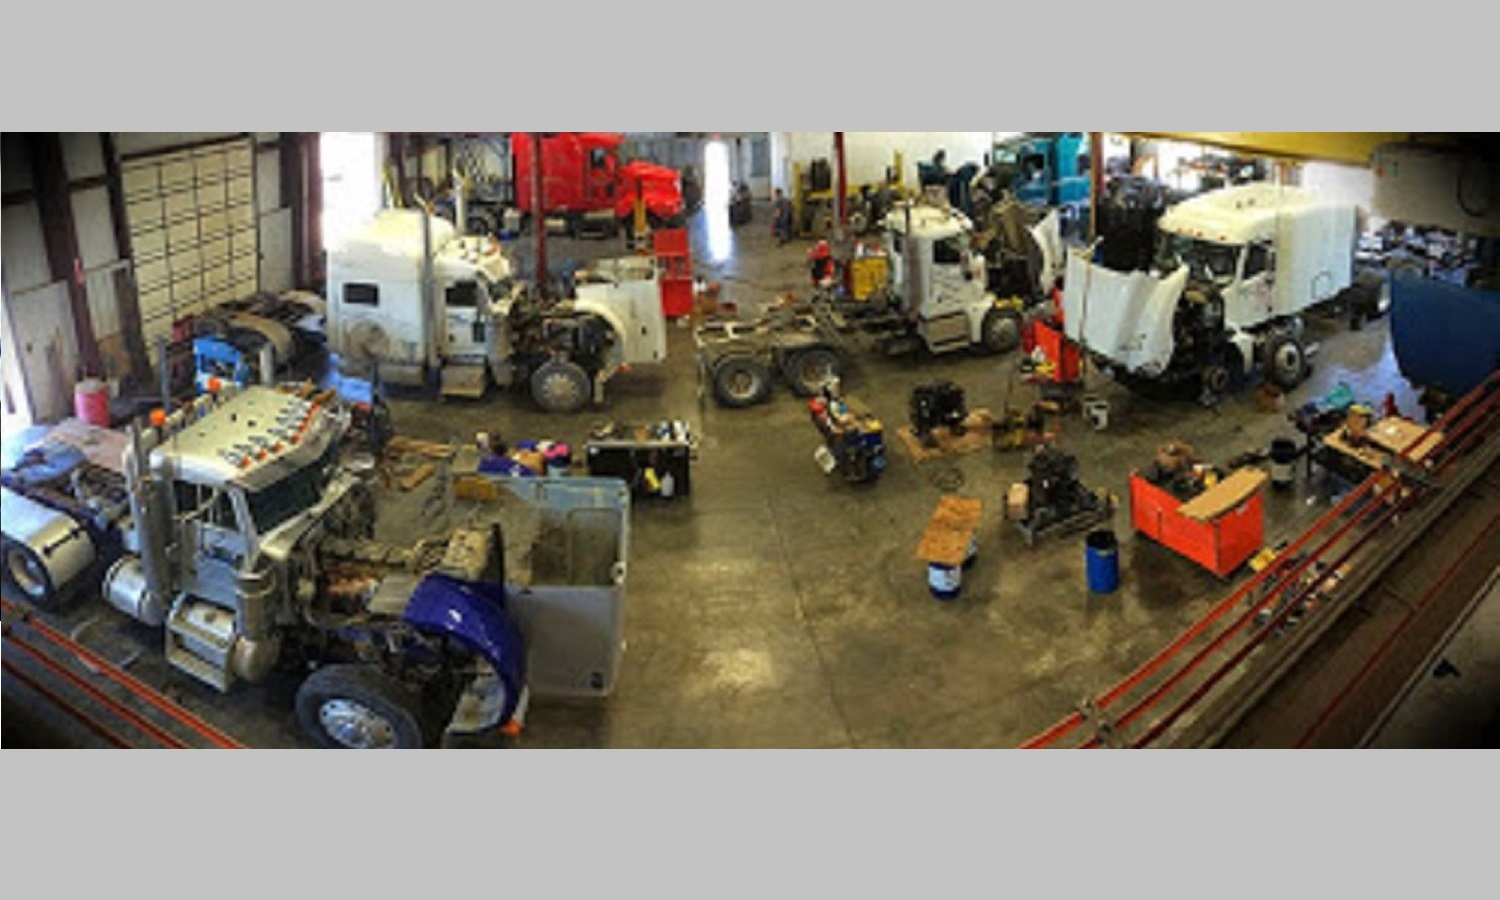 Picture of the inside of our repair shop